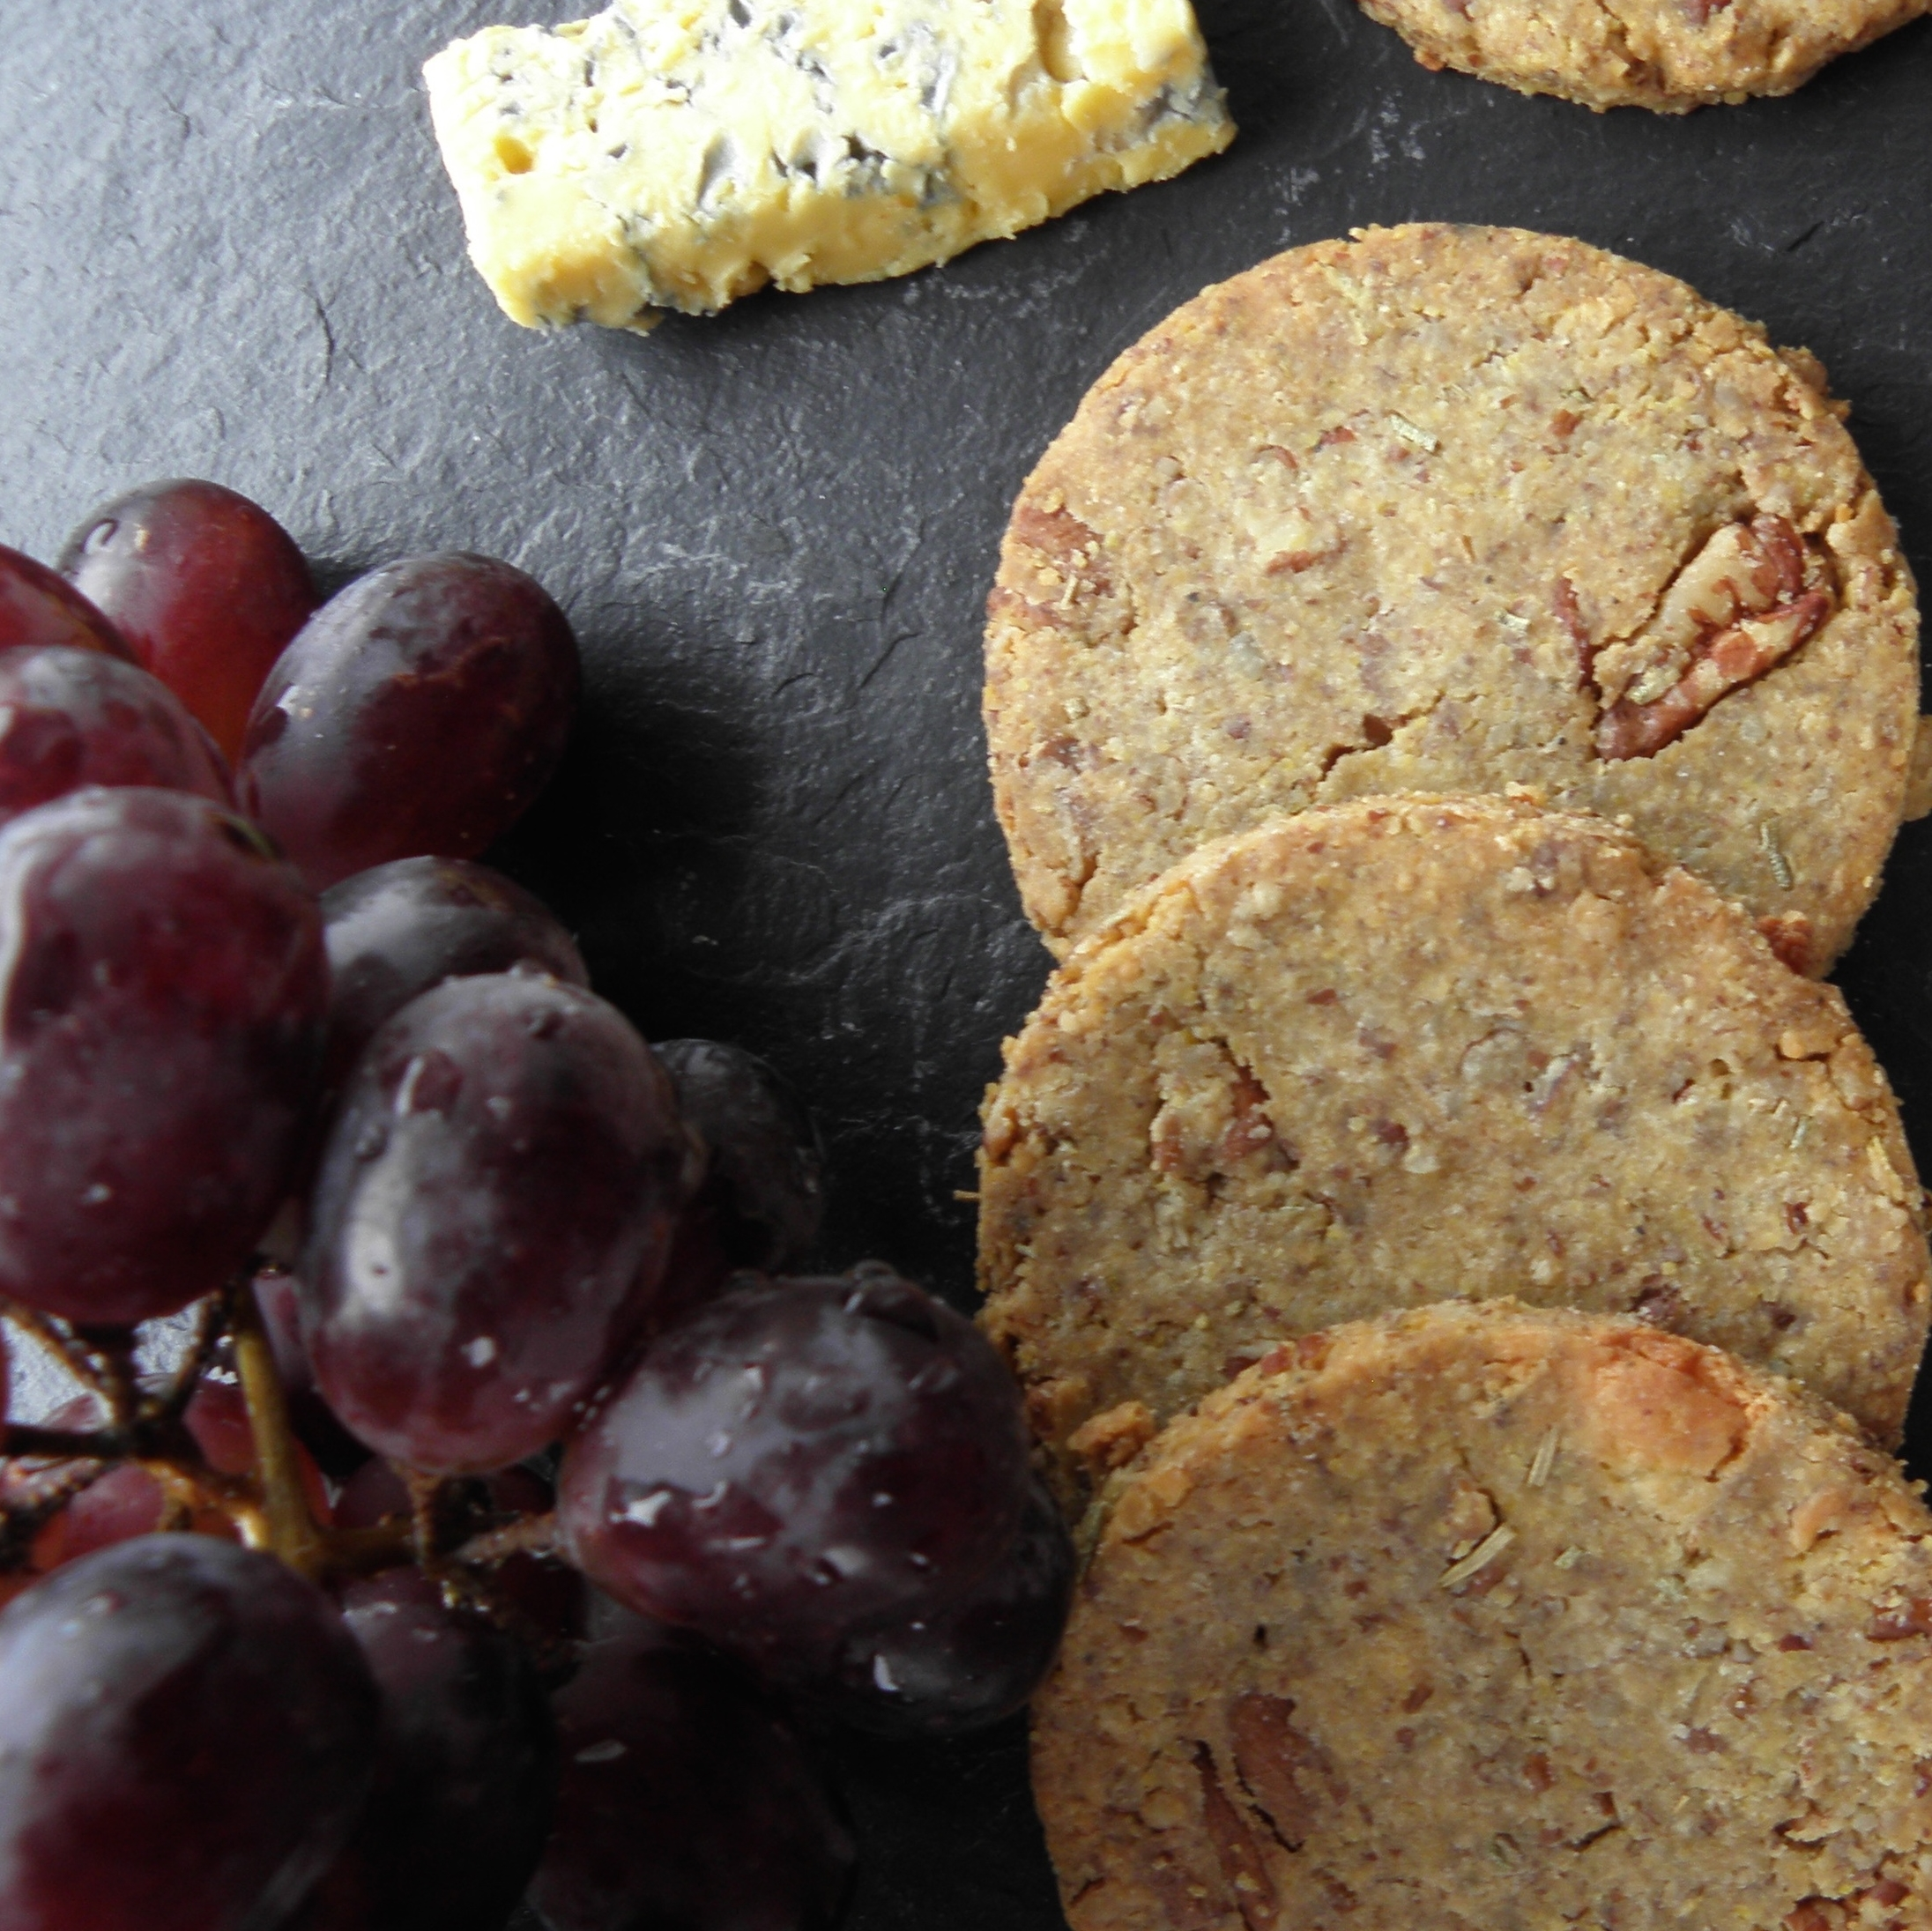 Harrogate Blue cheese and pecan biscuits